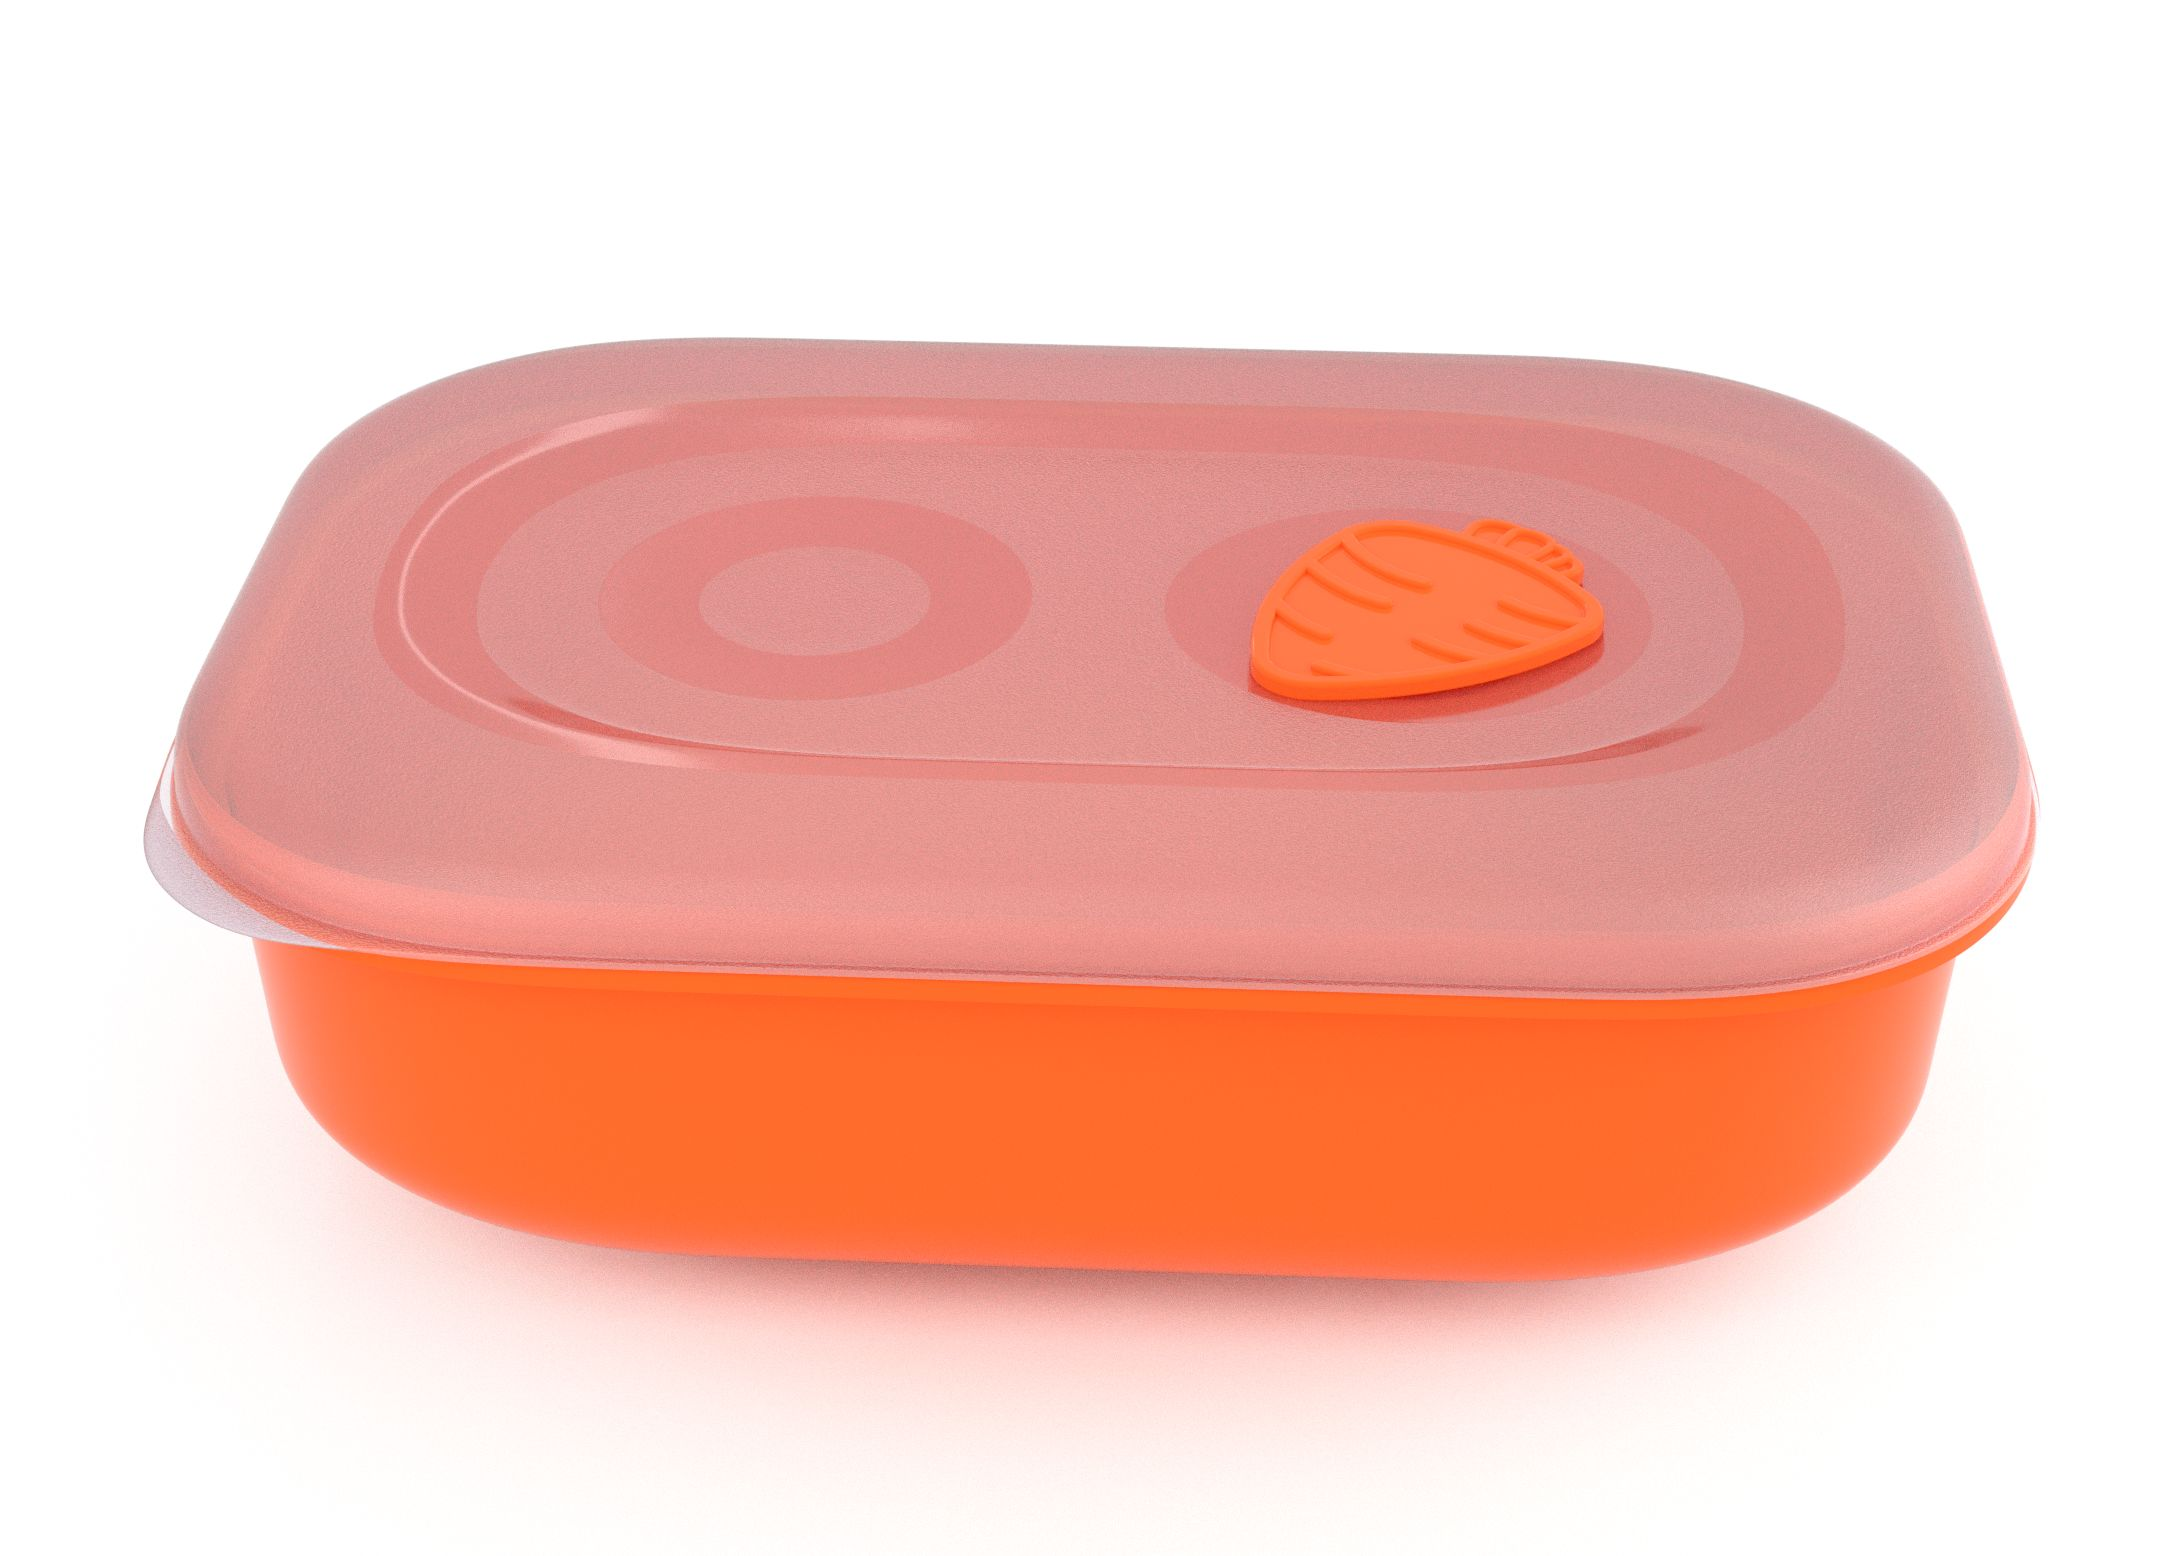 Tama Lock Rectangular Food Container 3l 9301 with Steam Release Carrot Valve Orange